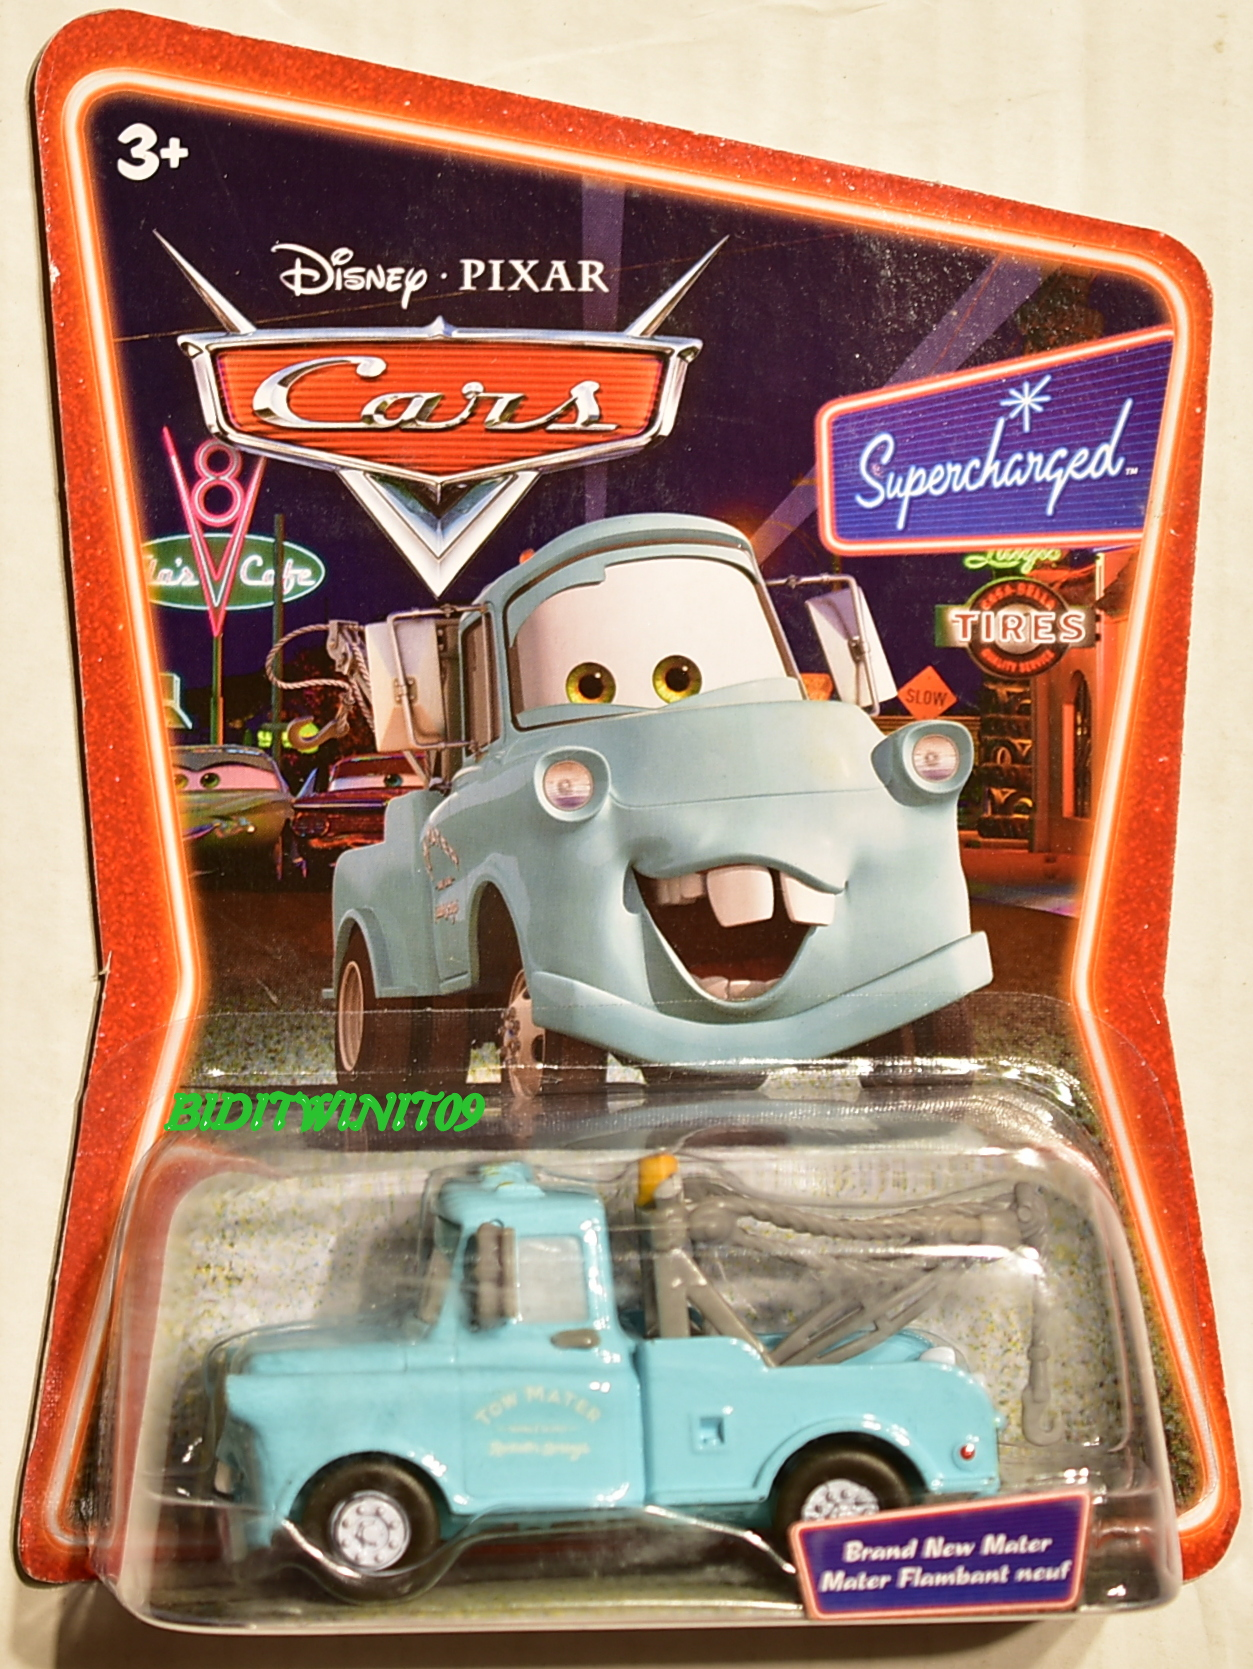 DISNEY PIXAR CARS SUPERCHARGED TIRES BRAND NEW MATER